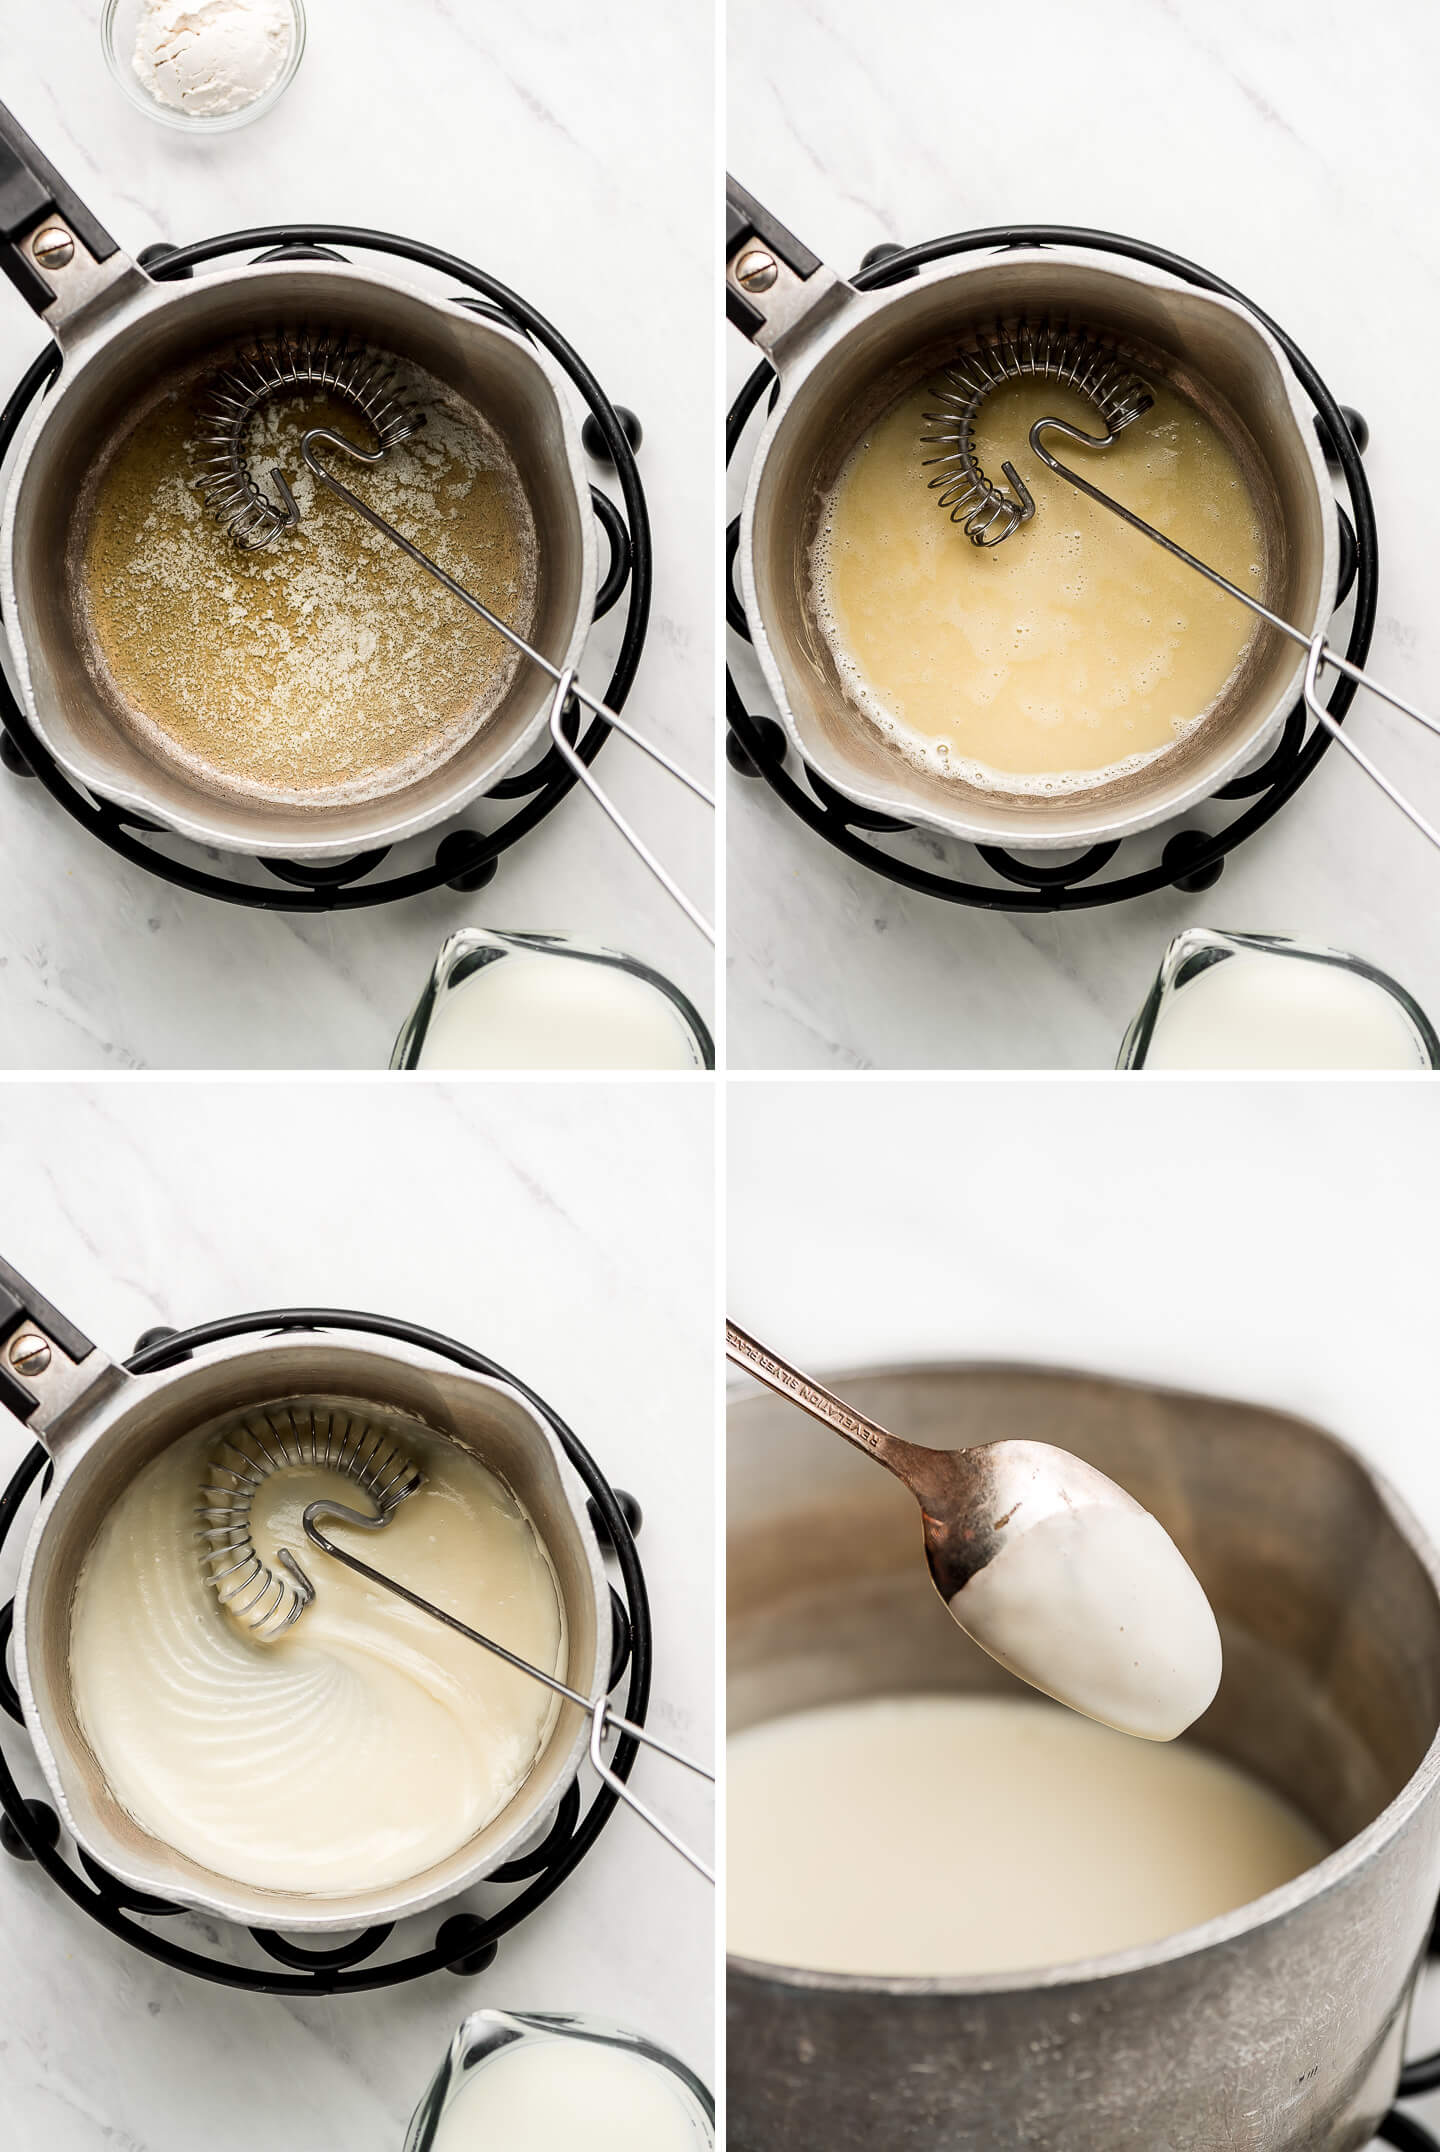 Process shots of making a roux with butter and flour in a pot; adding milk to make a béchamel.